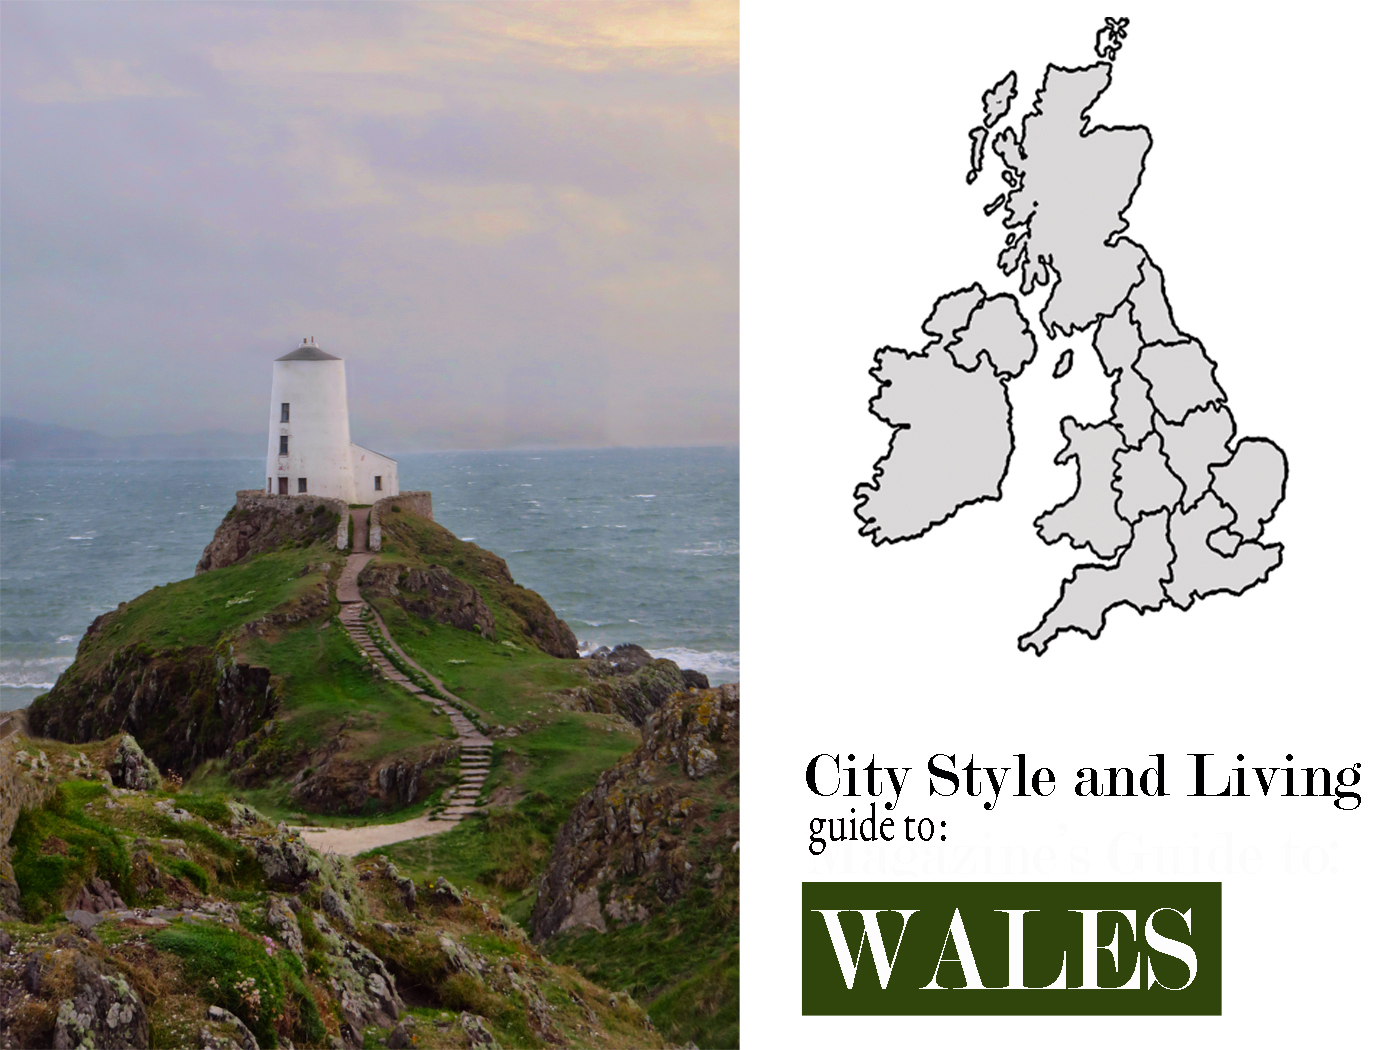 City Style and Living Magazine Winter 2018 Travel Guide To Wales